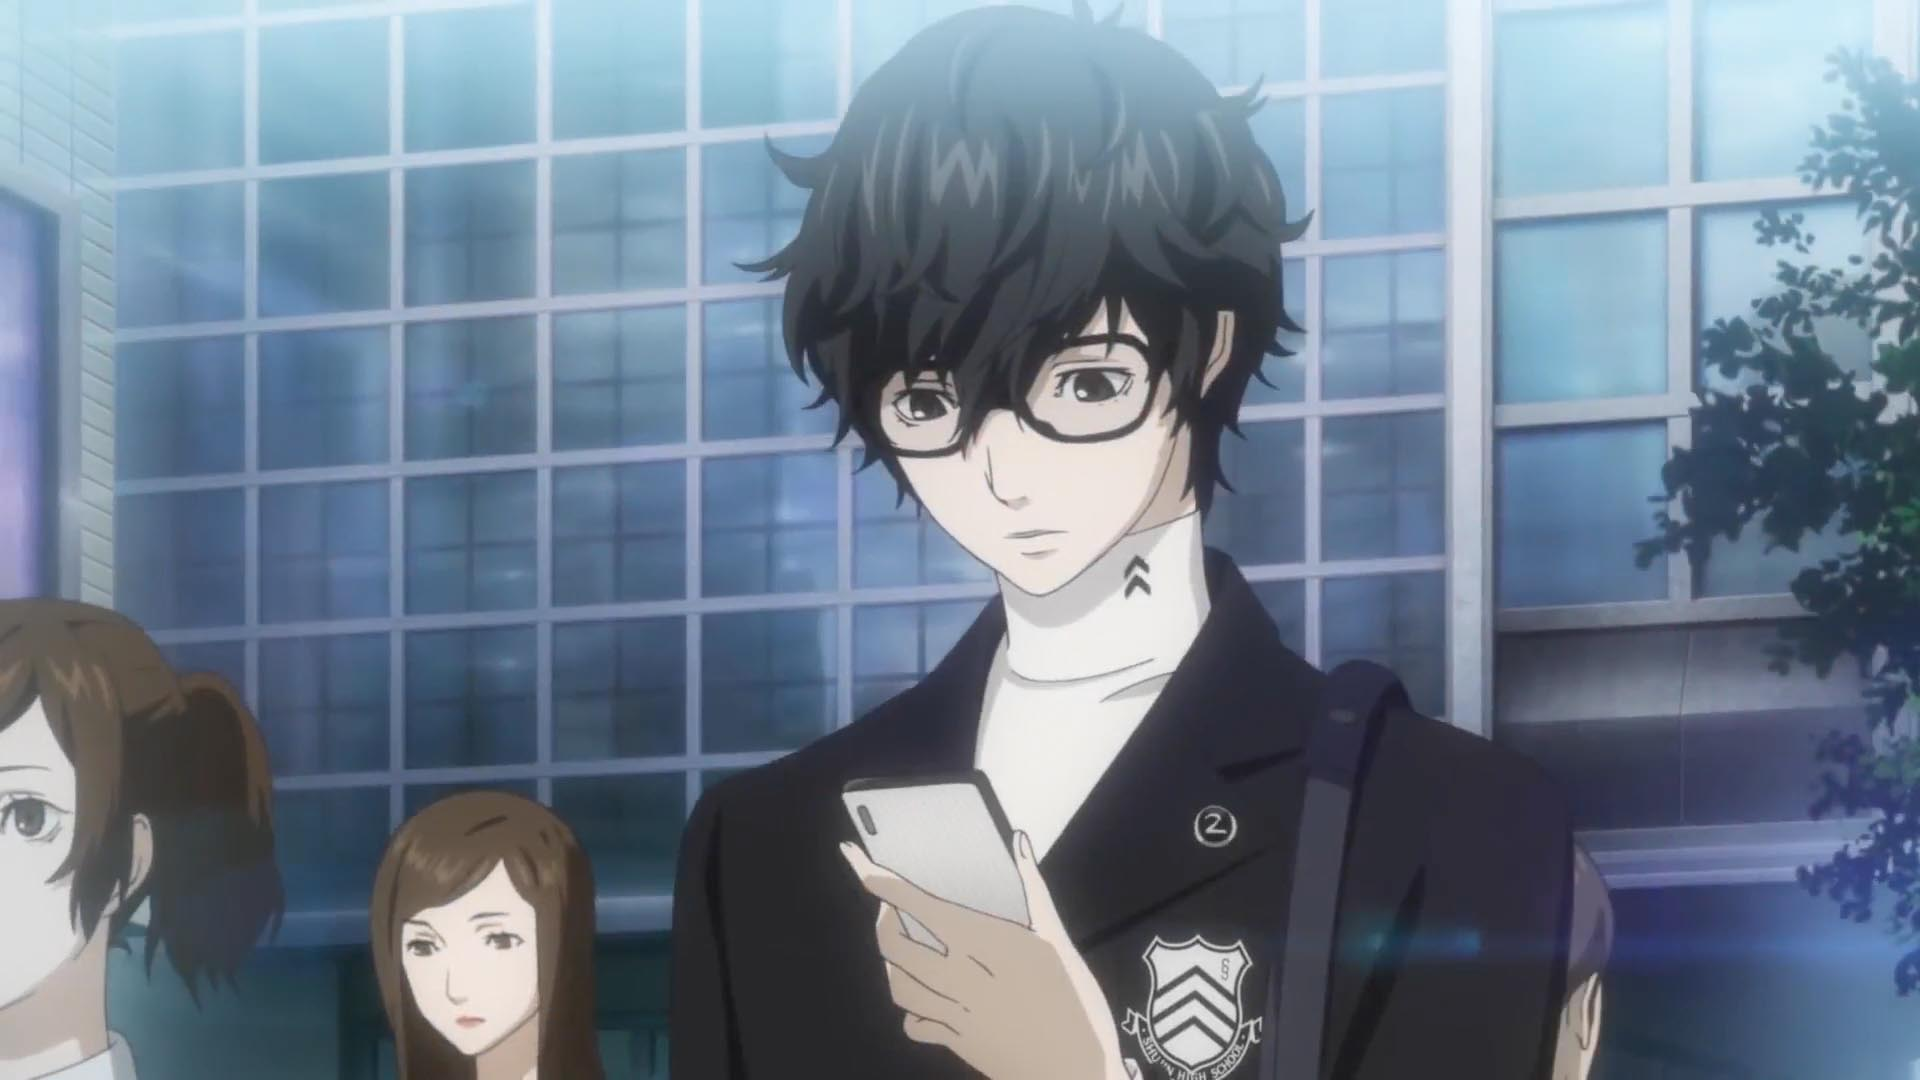 Persona 5 Confidant list, rank requirements and romance options